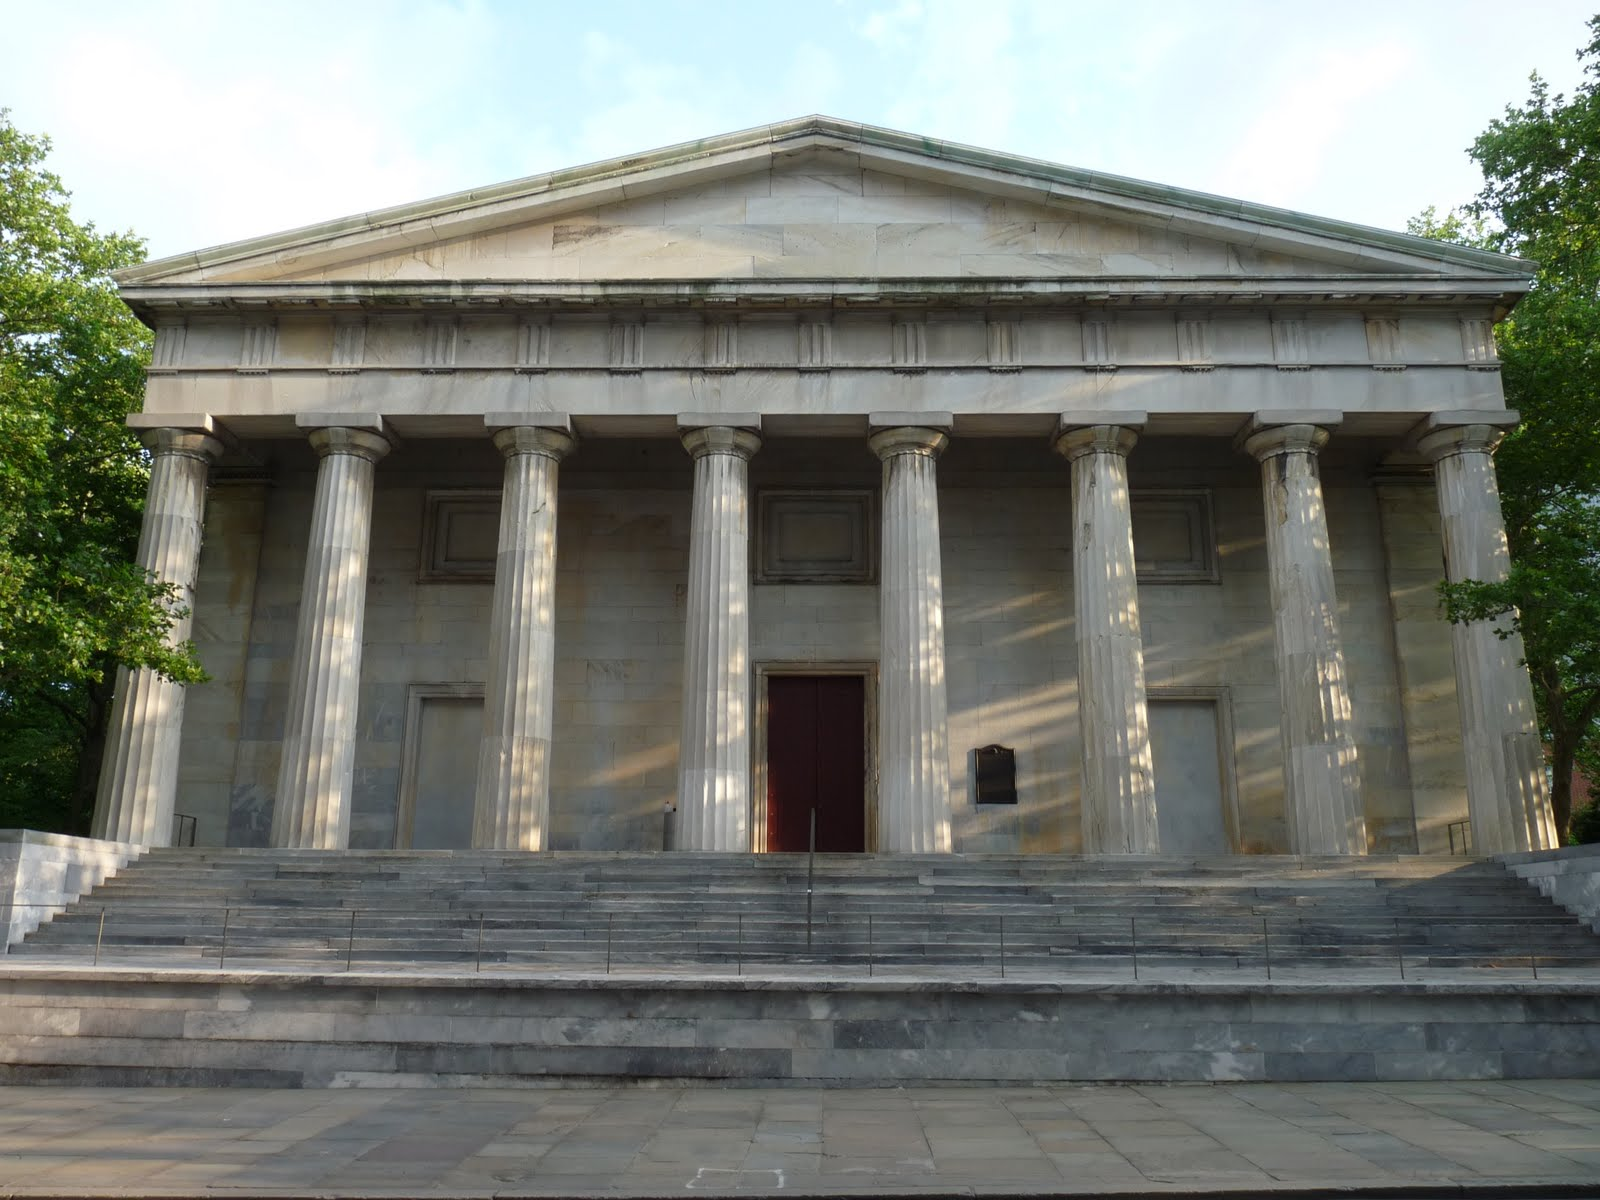 The Greek Revival Second Bank of the United States with its wide staircase and huge Doric columns.